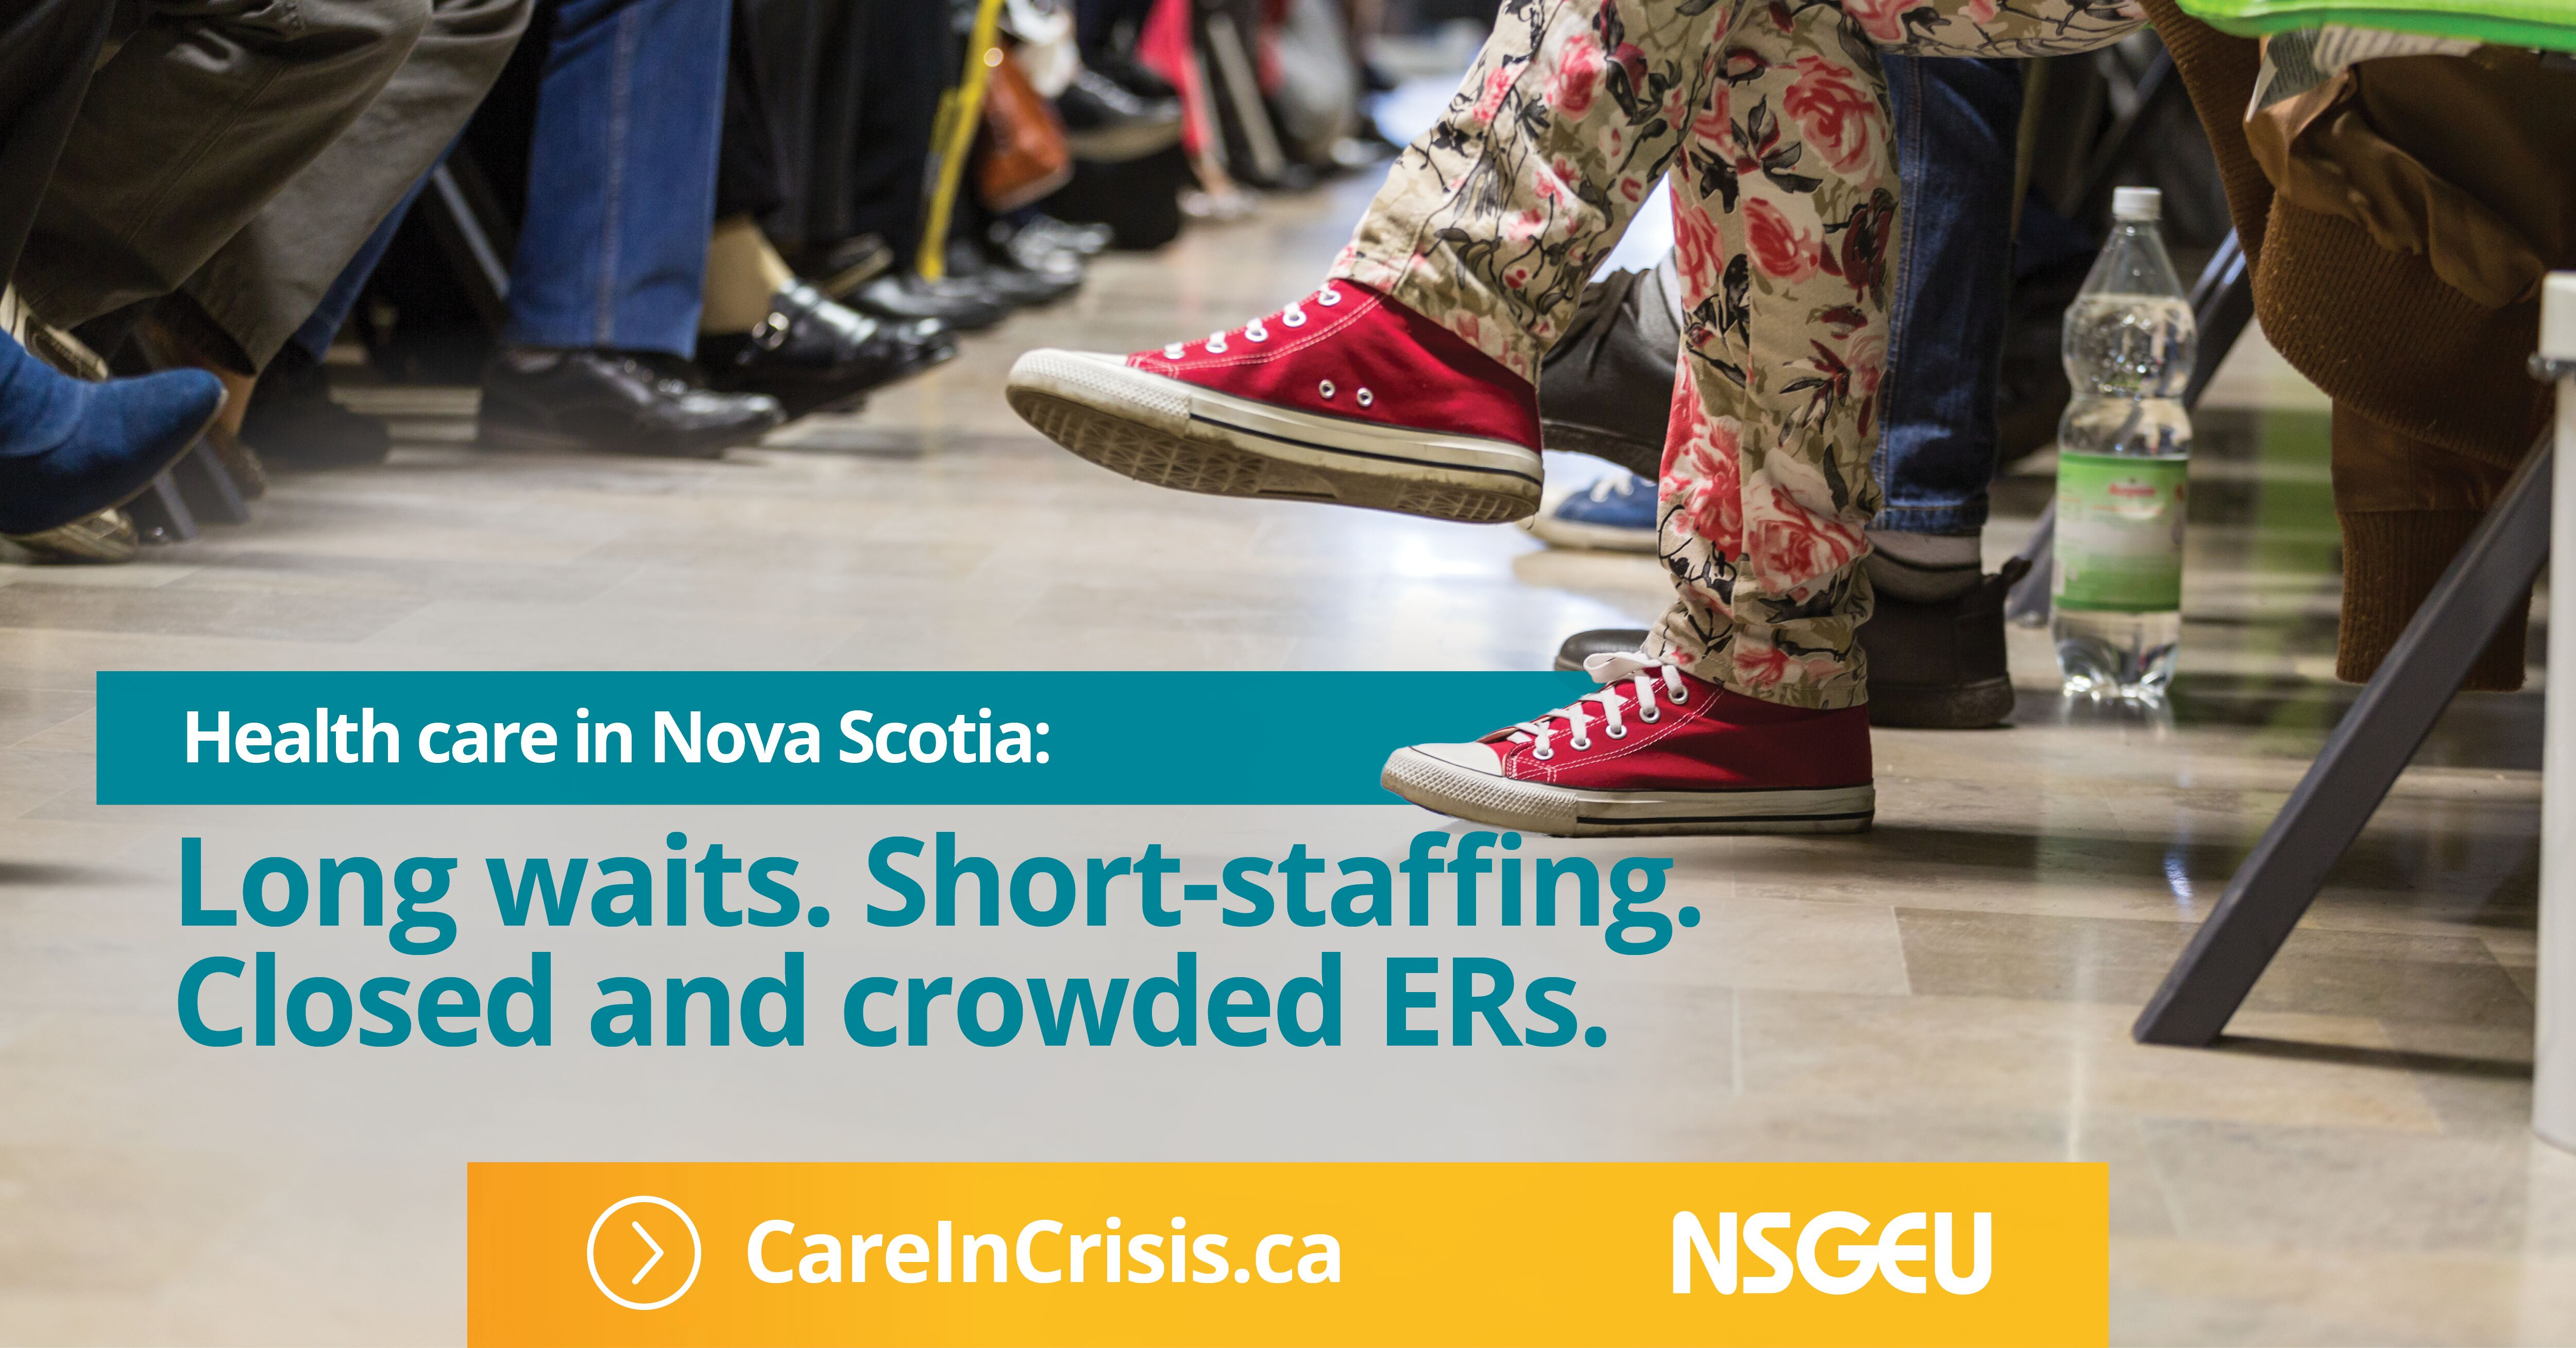 Long waits. Short-staffing. Closed and crowded ERs.